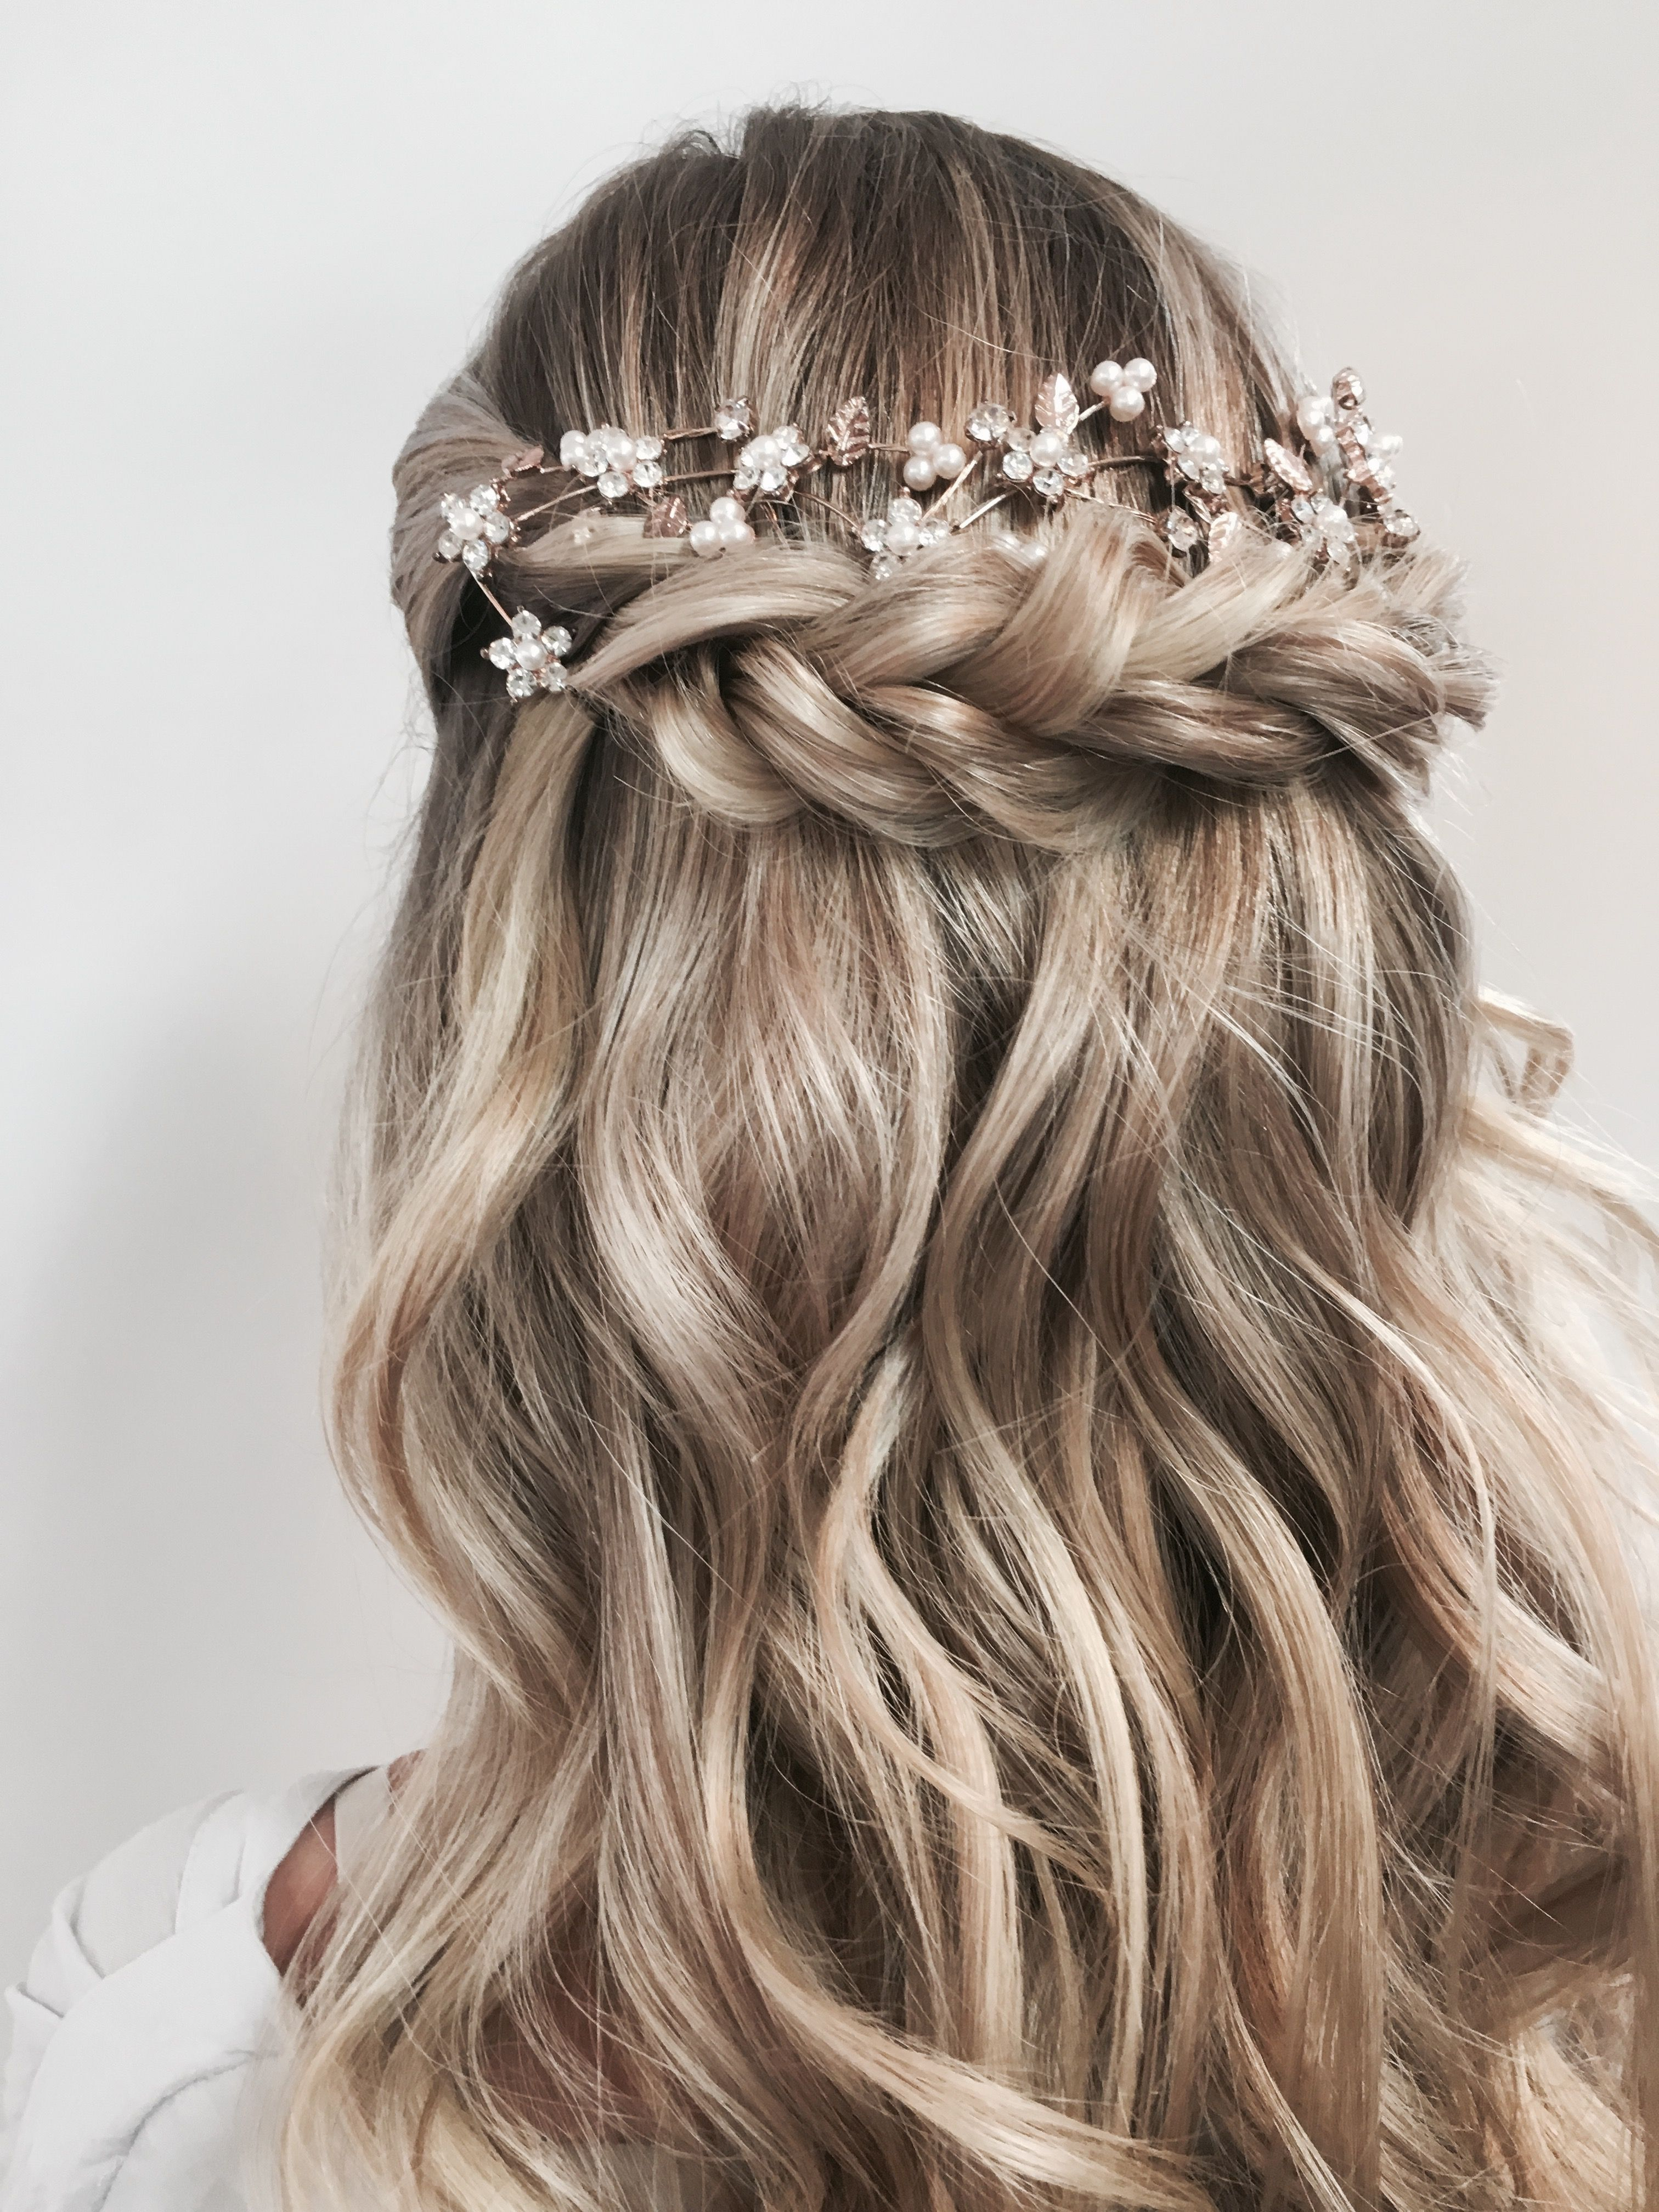 Upstyles Half Up Half Down Www Uptownhair Com Au Longhair Formalhair Upstyle Updo Junior Bridesmaid Hair Curled Hairstyles For Medium Hair Ball Hairstyles